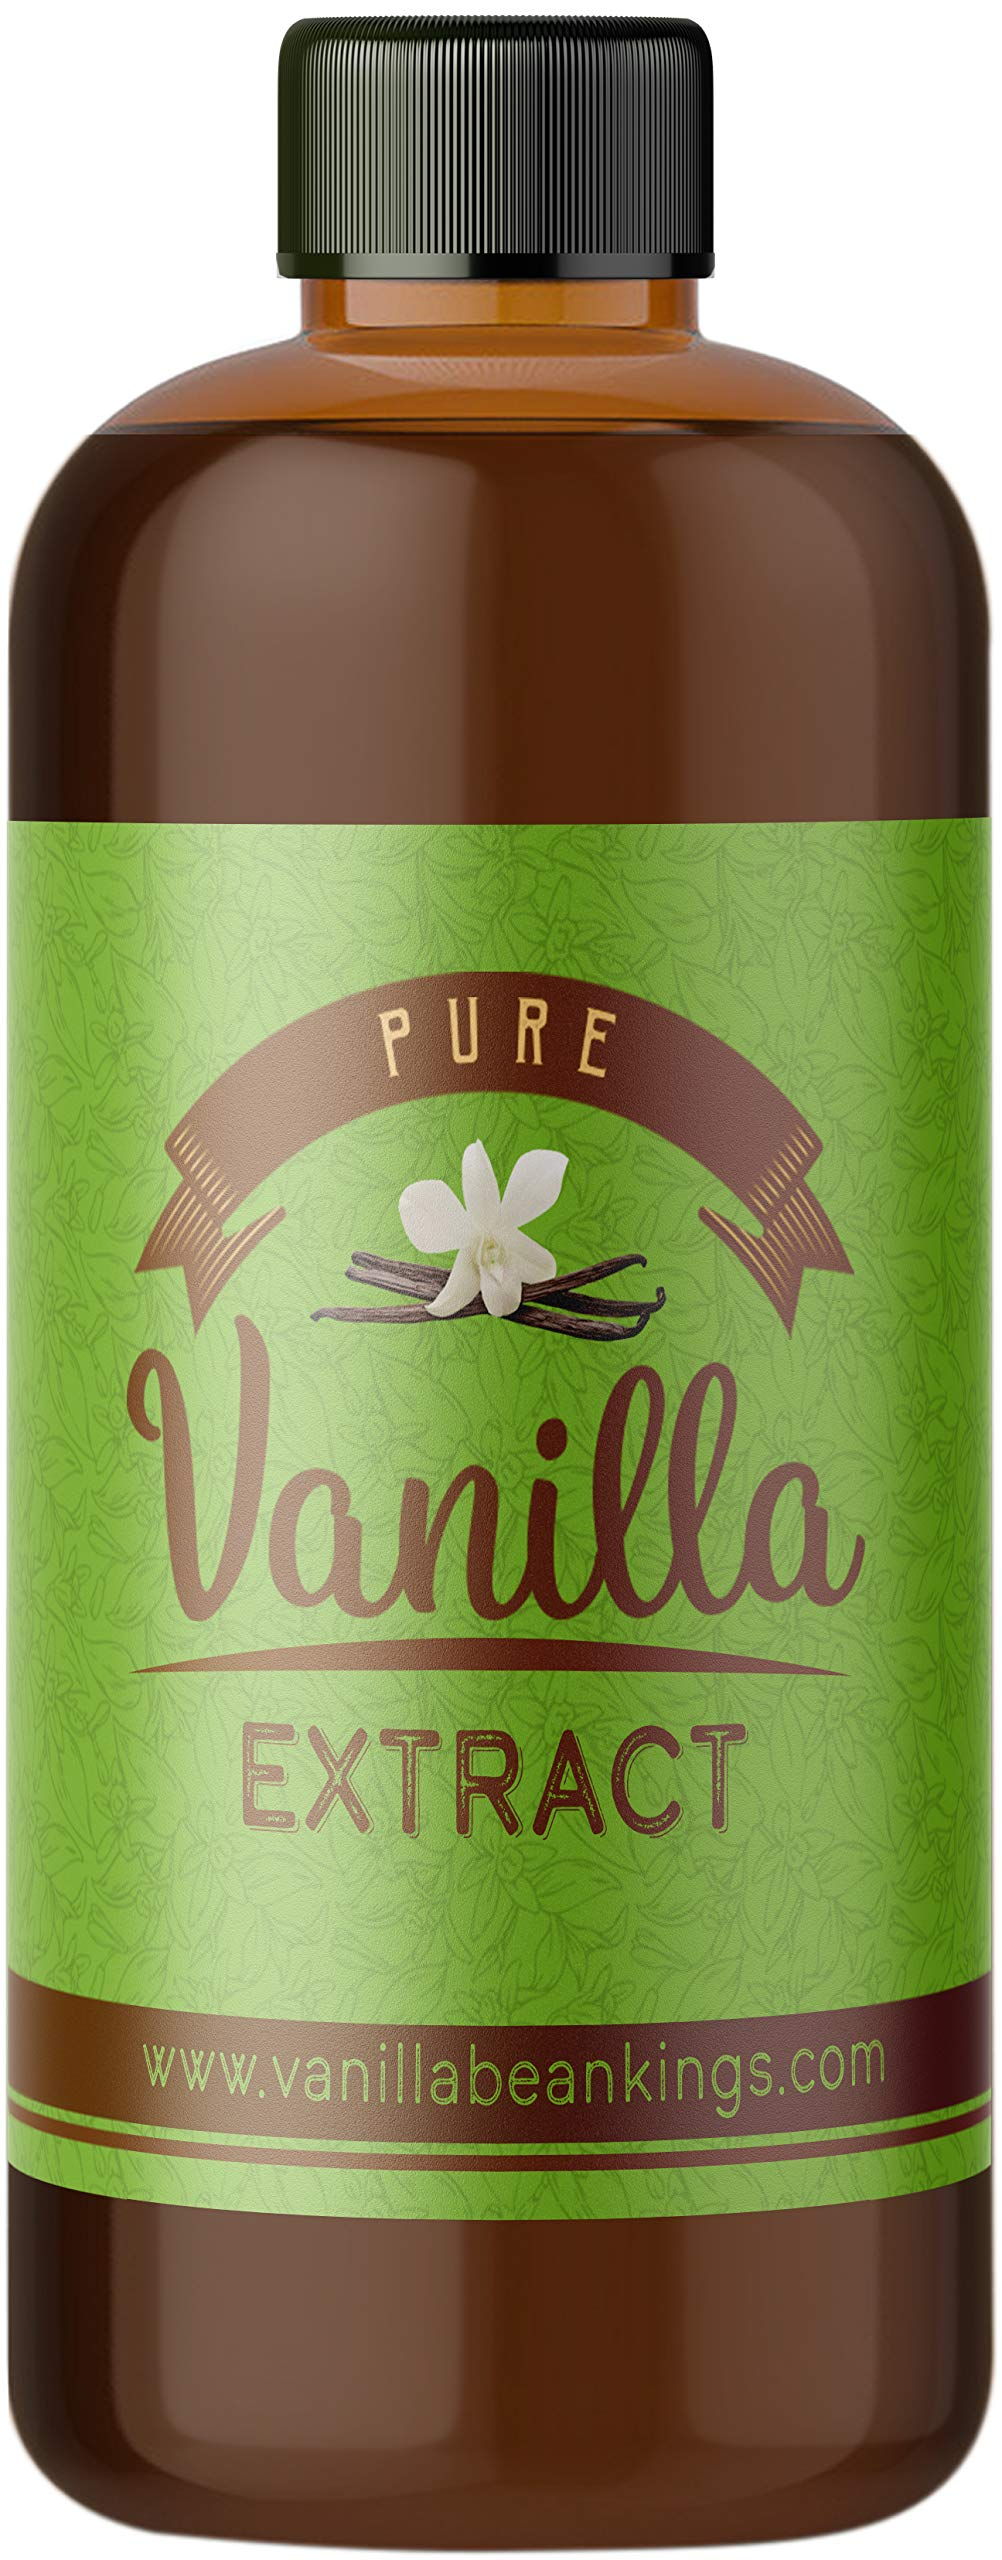 Pure Vanilla Extract for Baking and Cooking - Gourmet Madagascar Bourbon Blend made with Real Vanilla Beans, 8 Ounces (Double Fold)